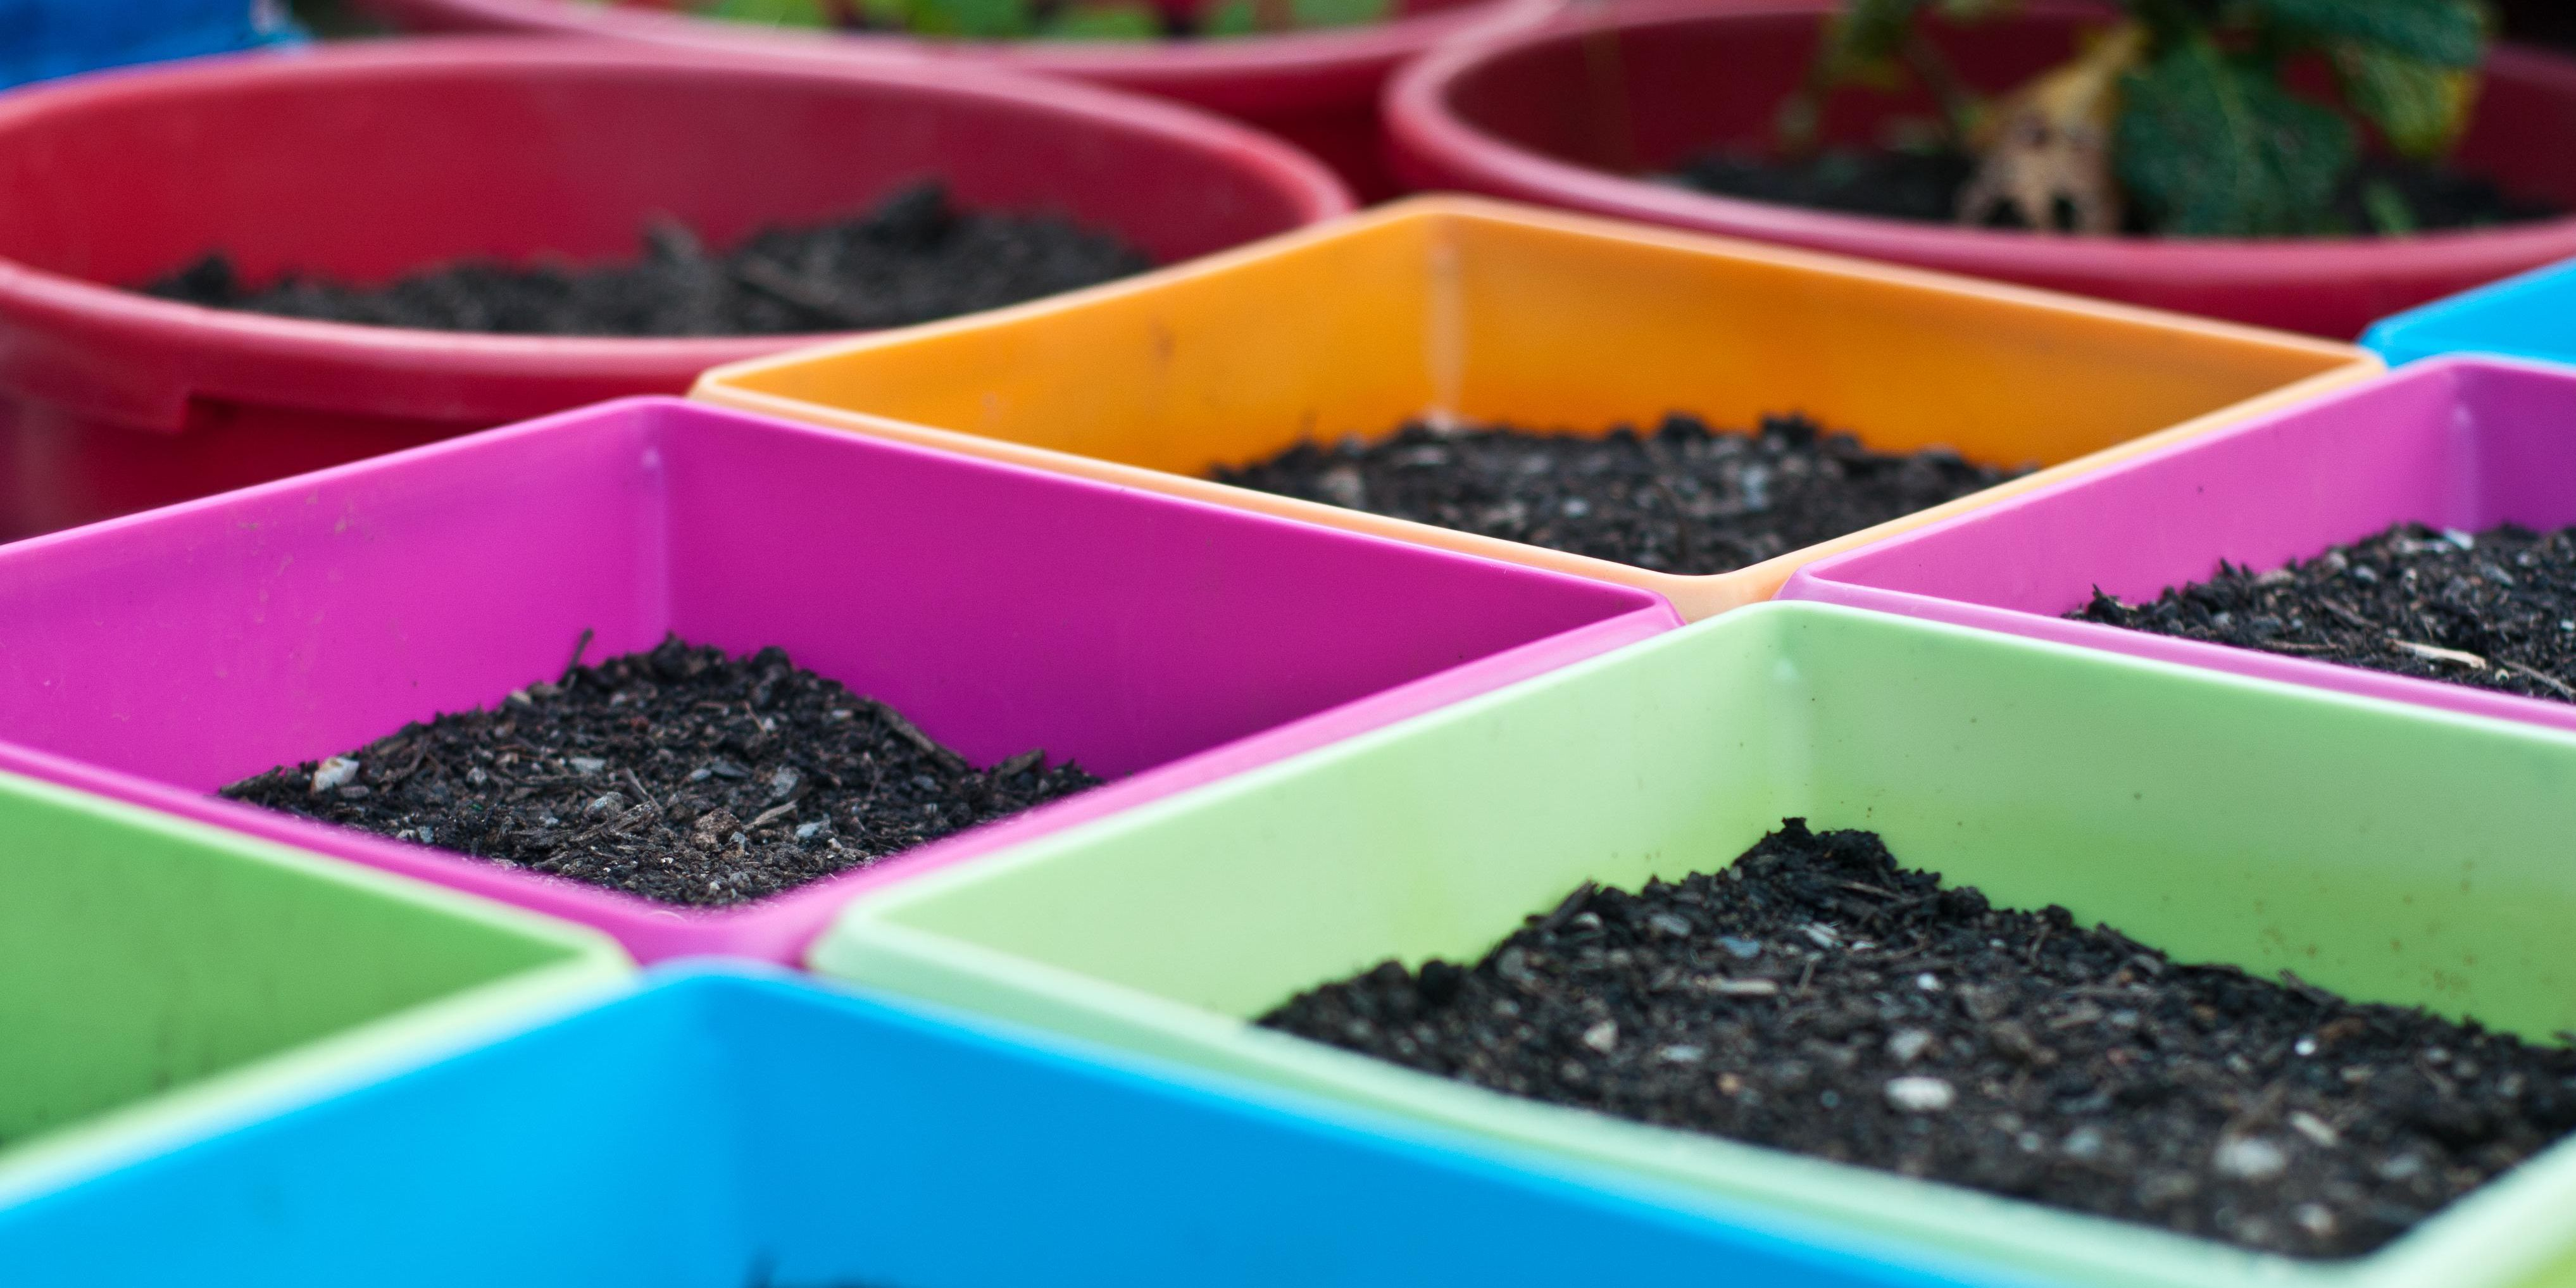 East Texas Ag News: Building your garden soil